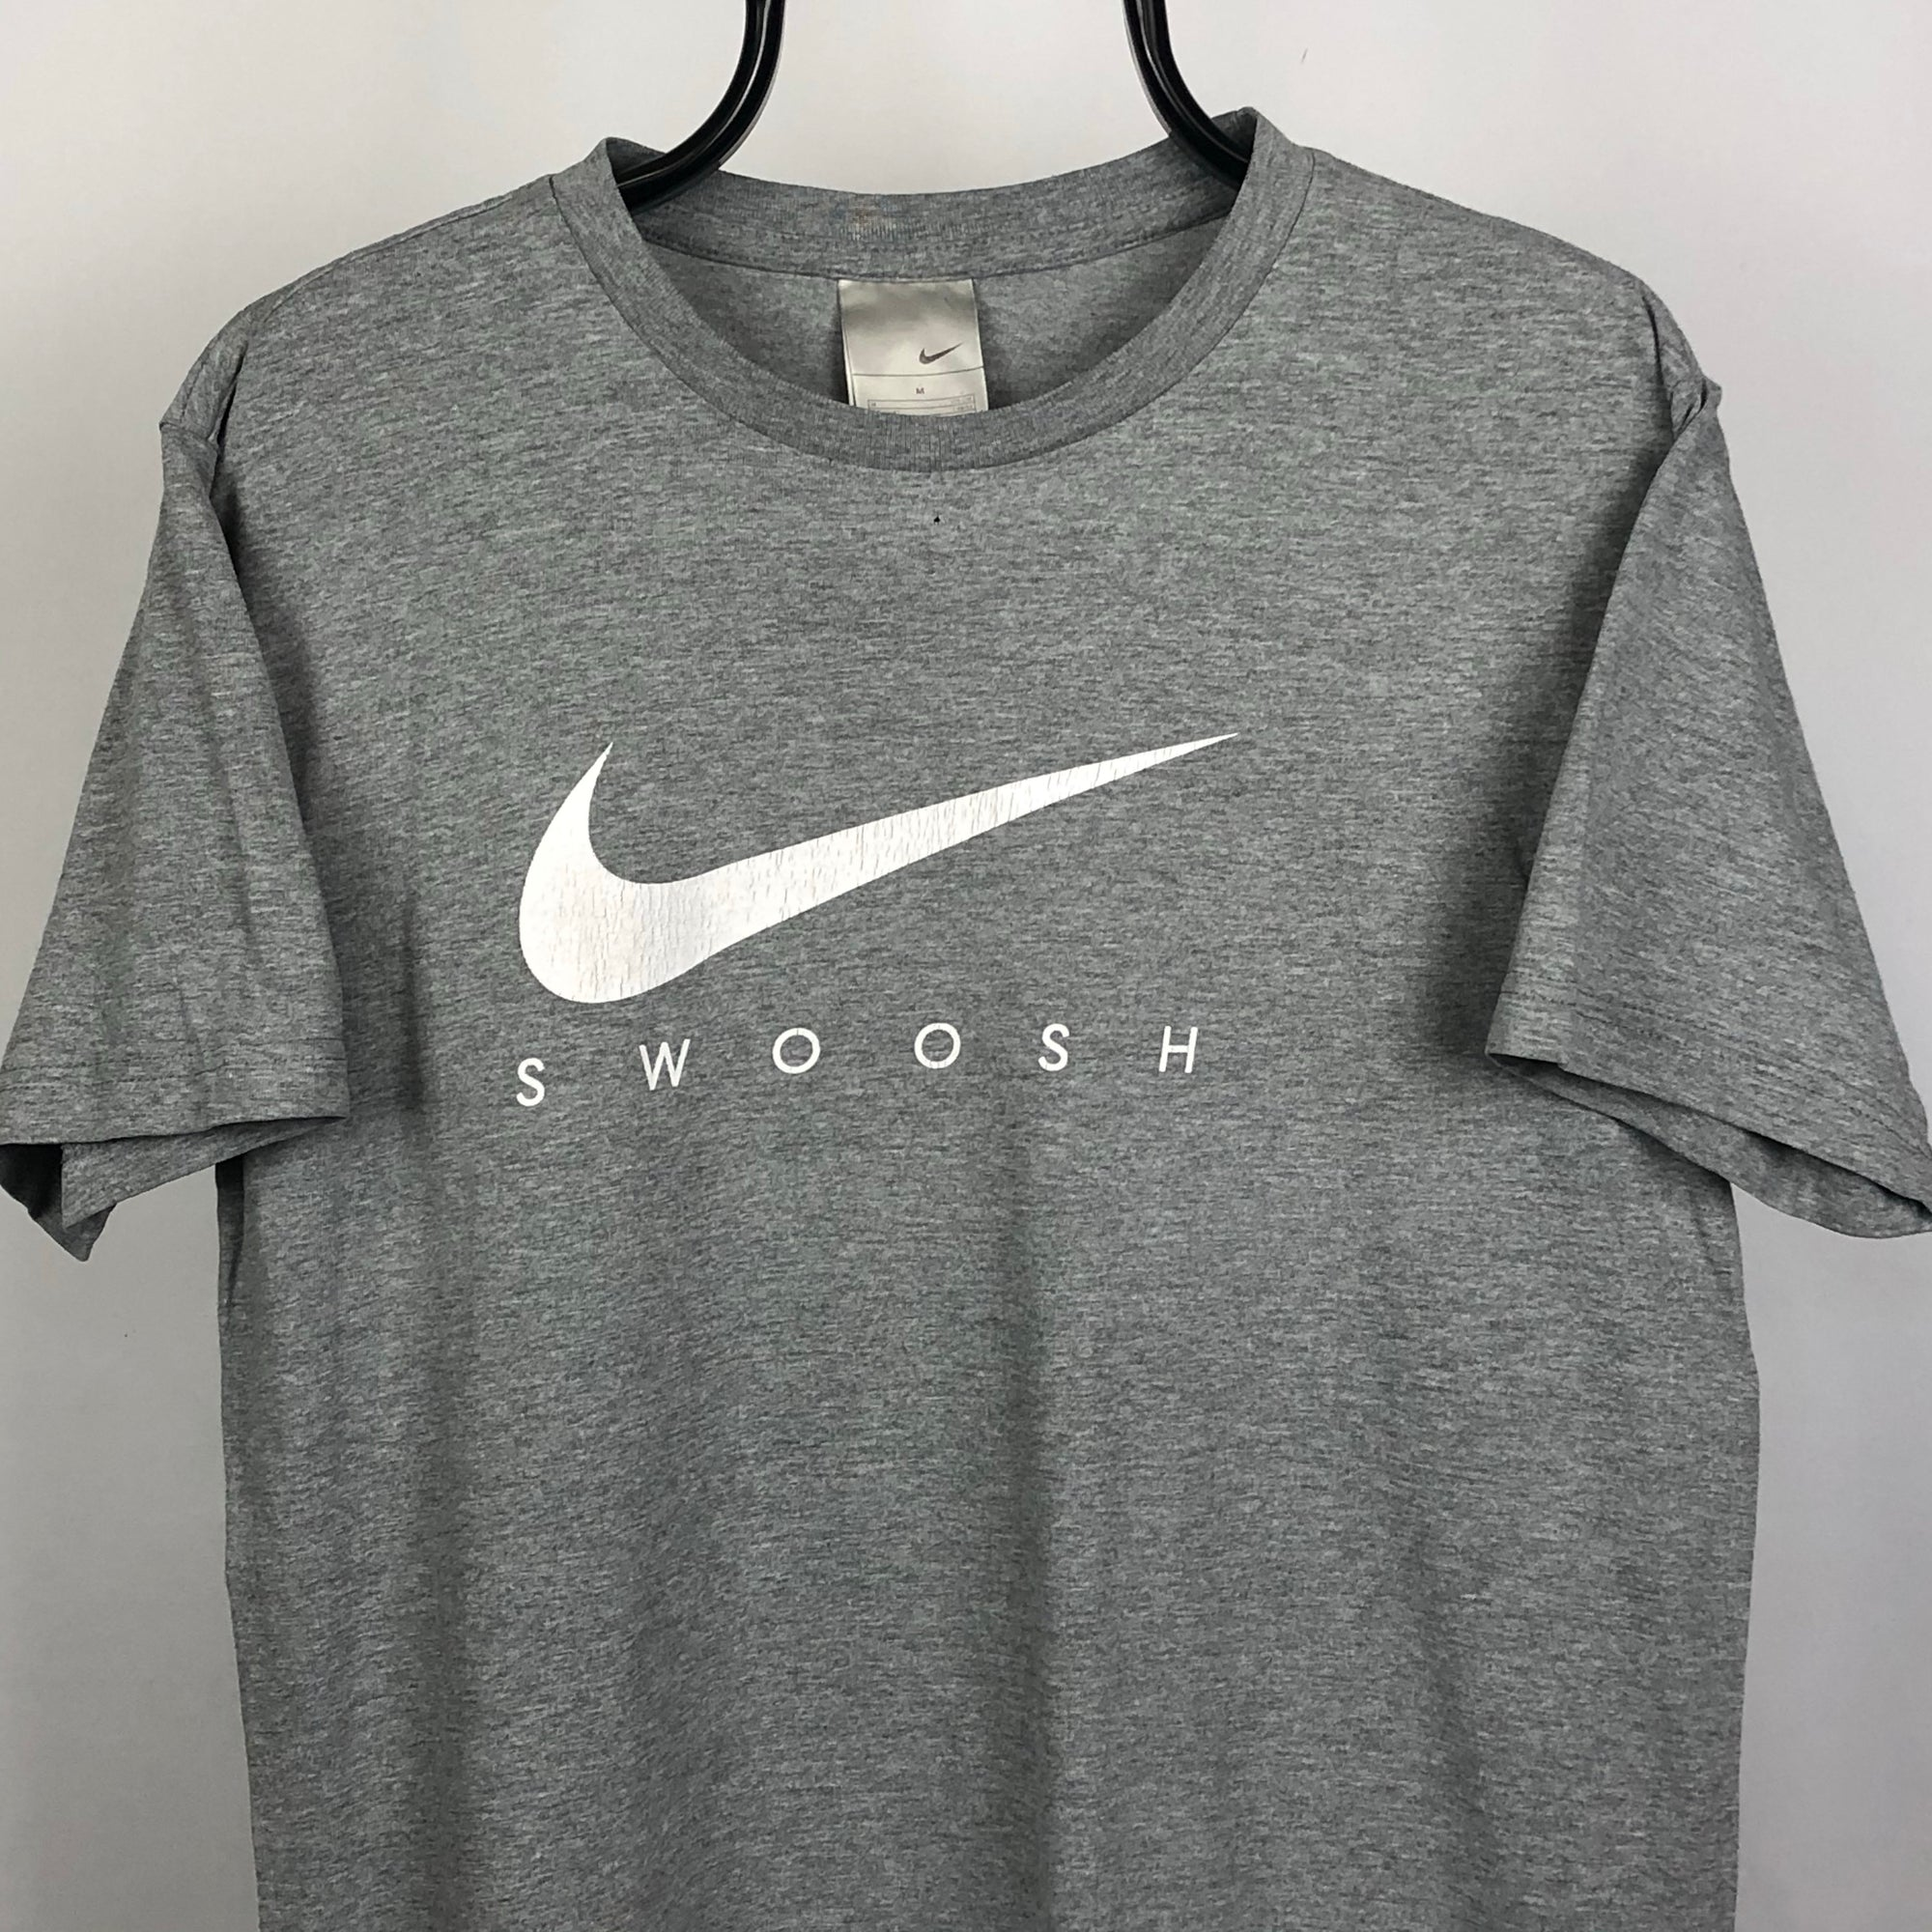 Vintage Nike Swoosh Tee - Men's Medium/Women's Large